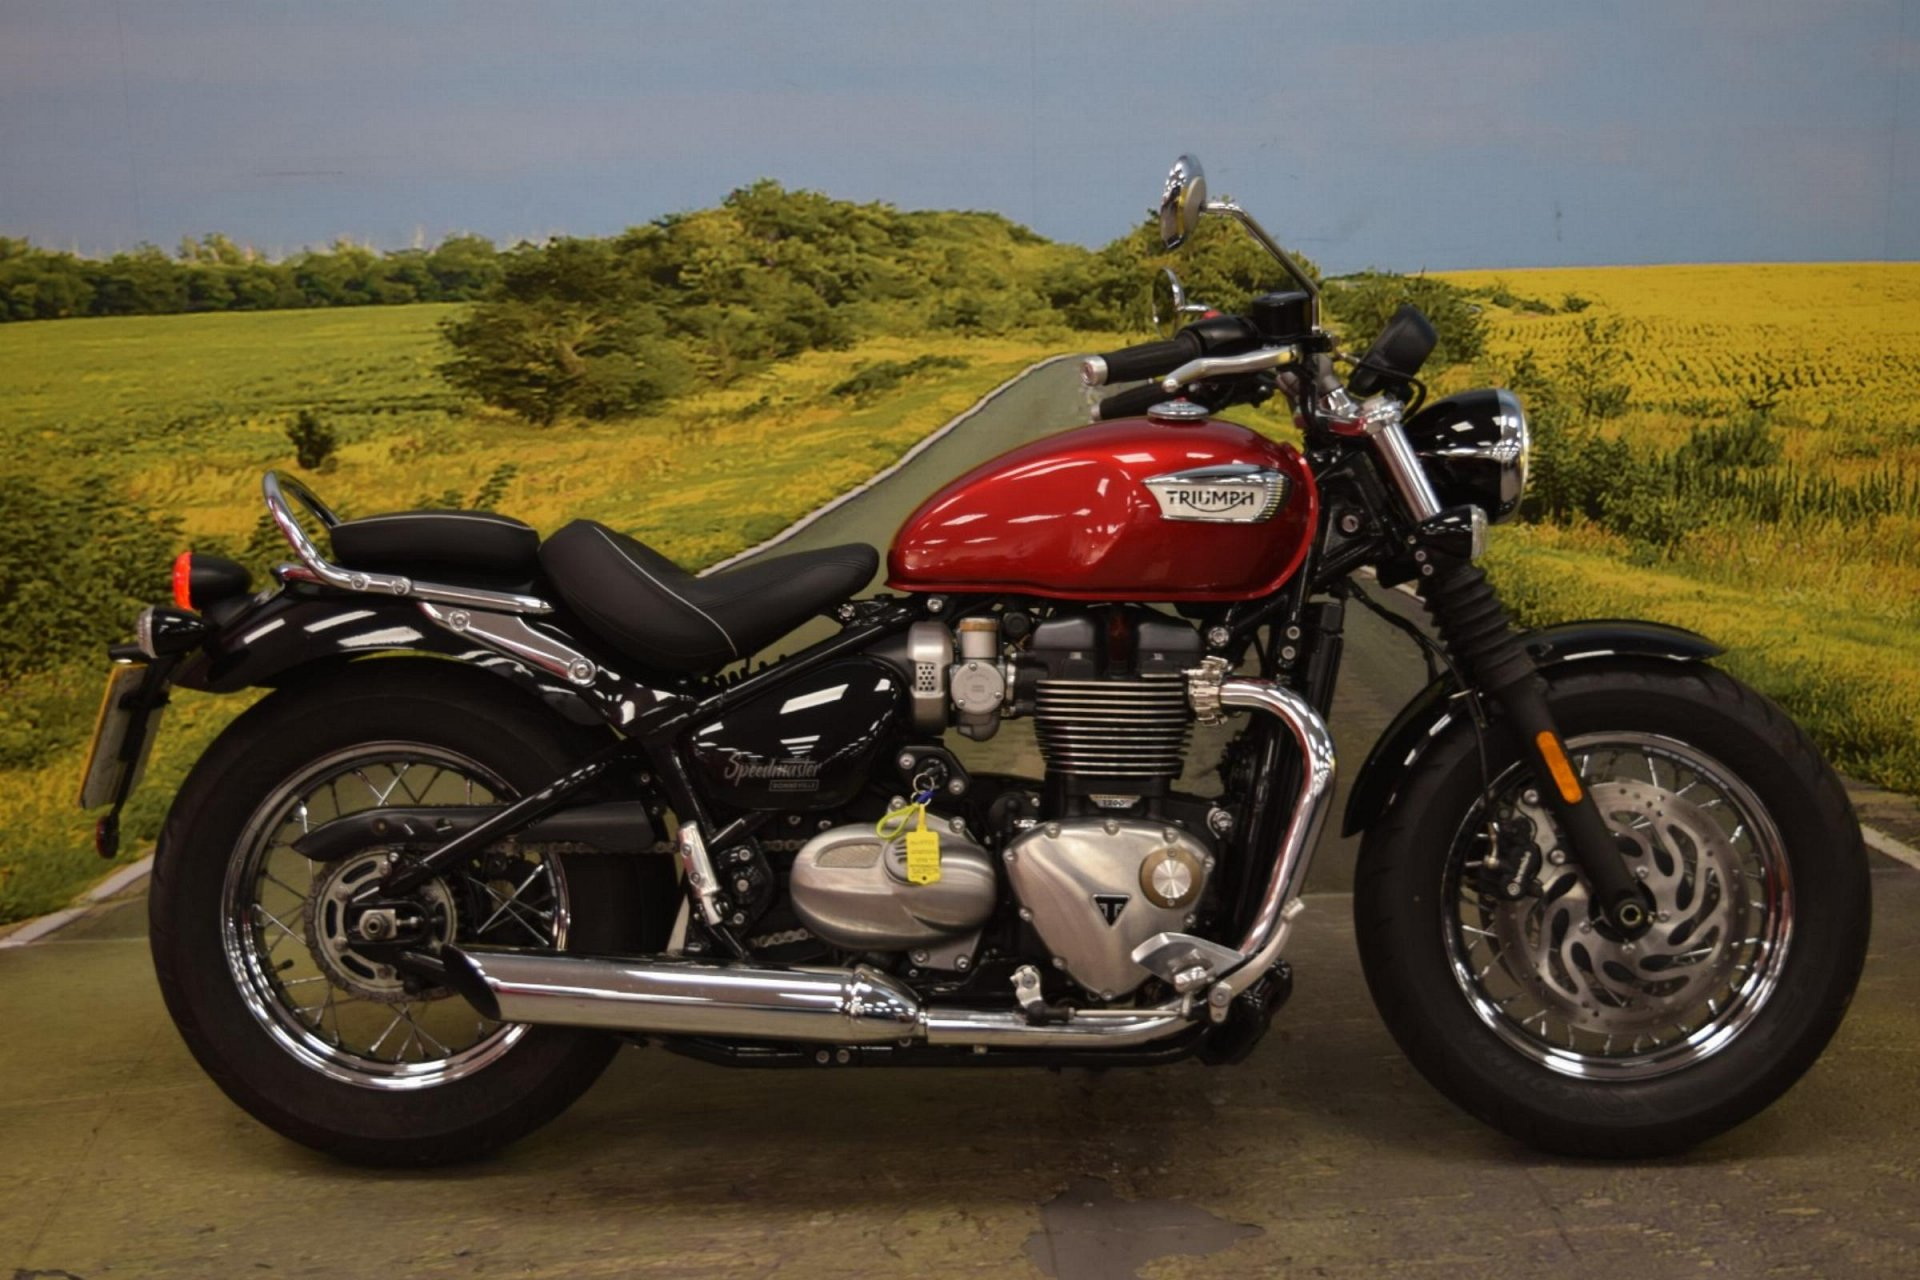 2018 Triumph Bonneville Speedmaster for sale in Staffordshire